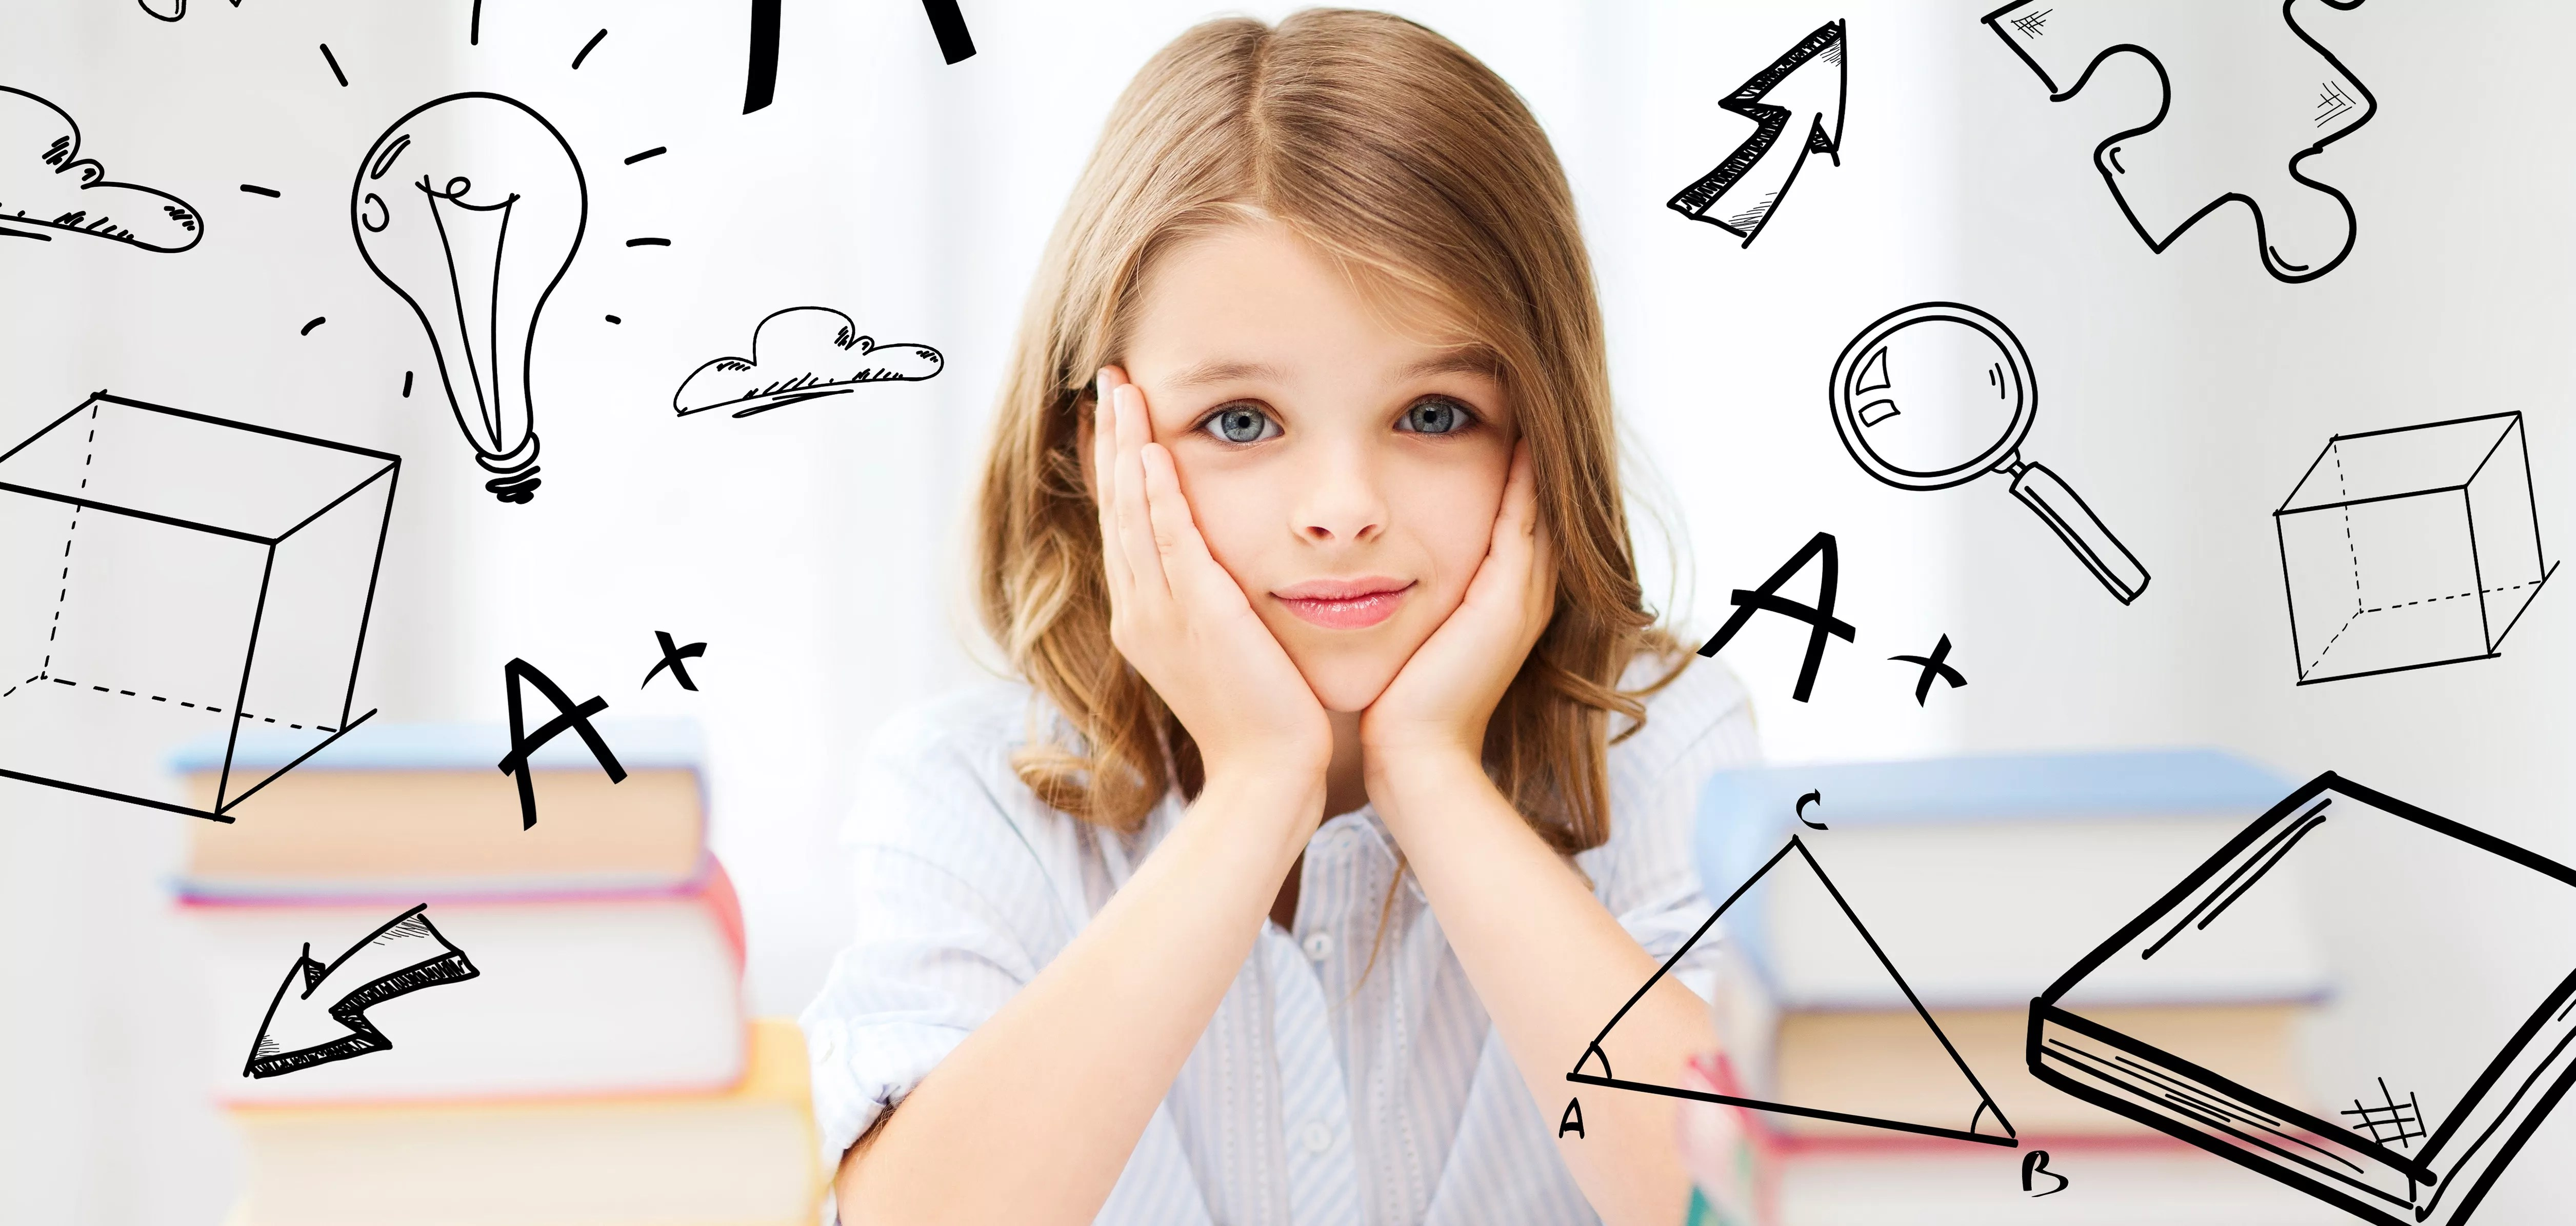 10 Homework Amp Study Tips For Kids With Add Adhd